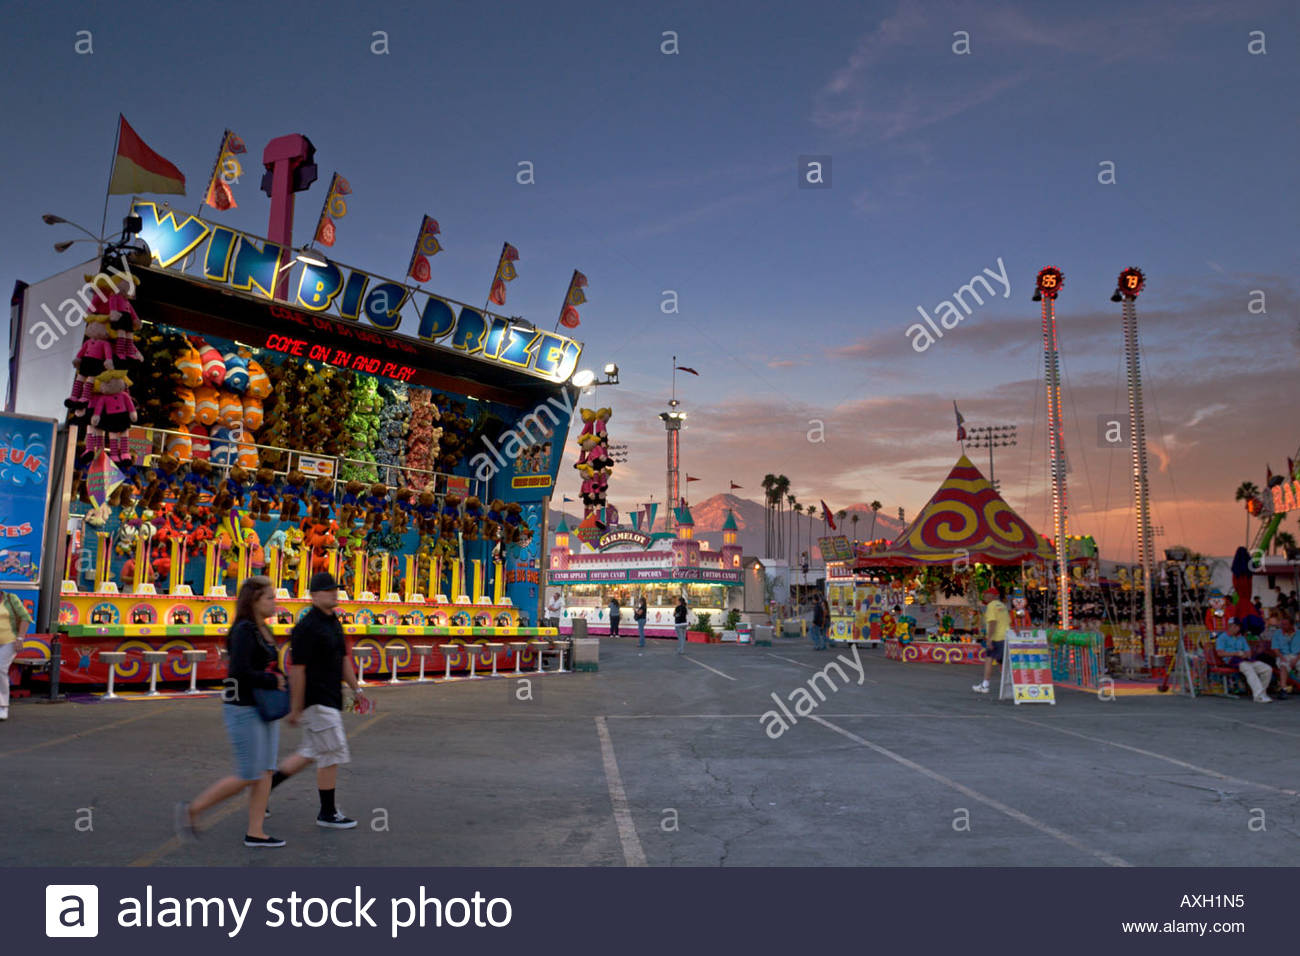 Carnival Games Midway at Sunset Los Angeles County Fair Pomona California - Stock Image